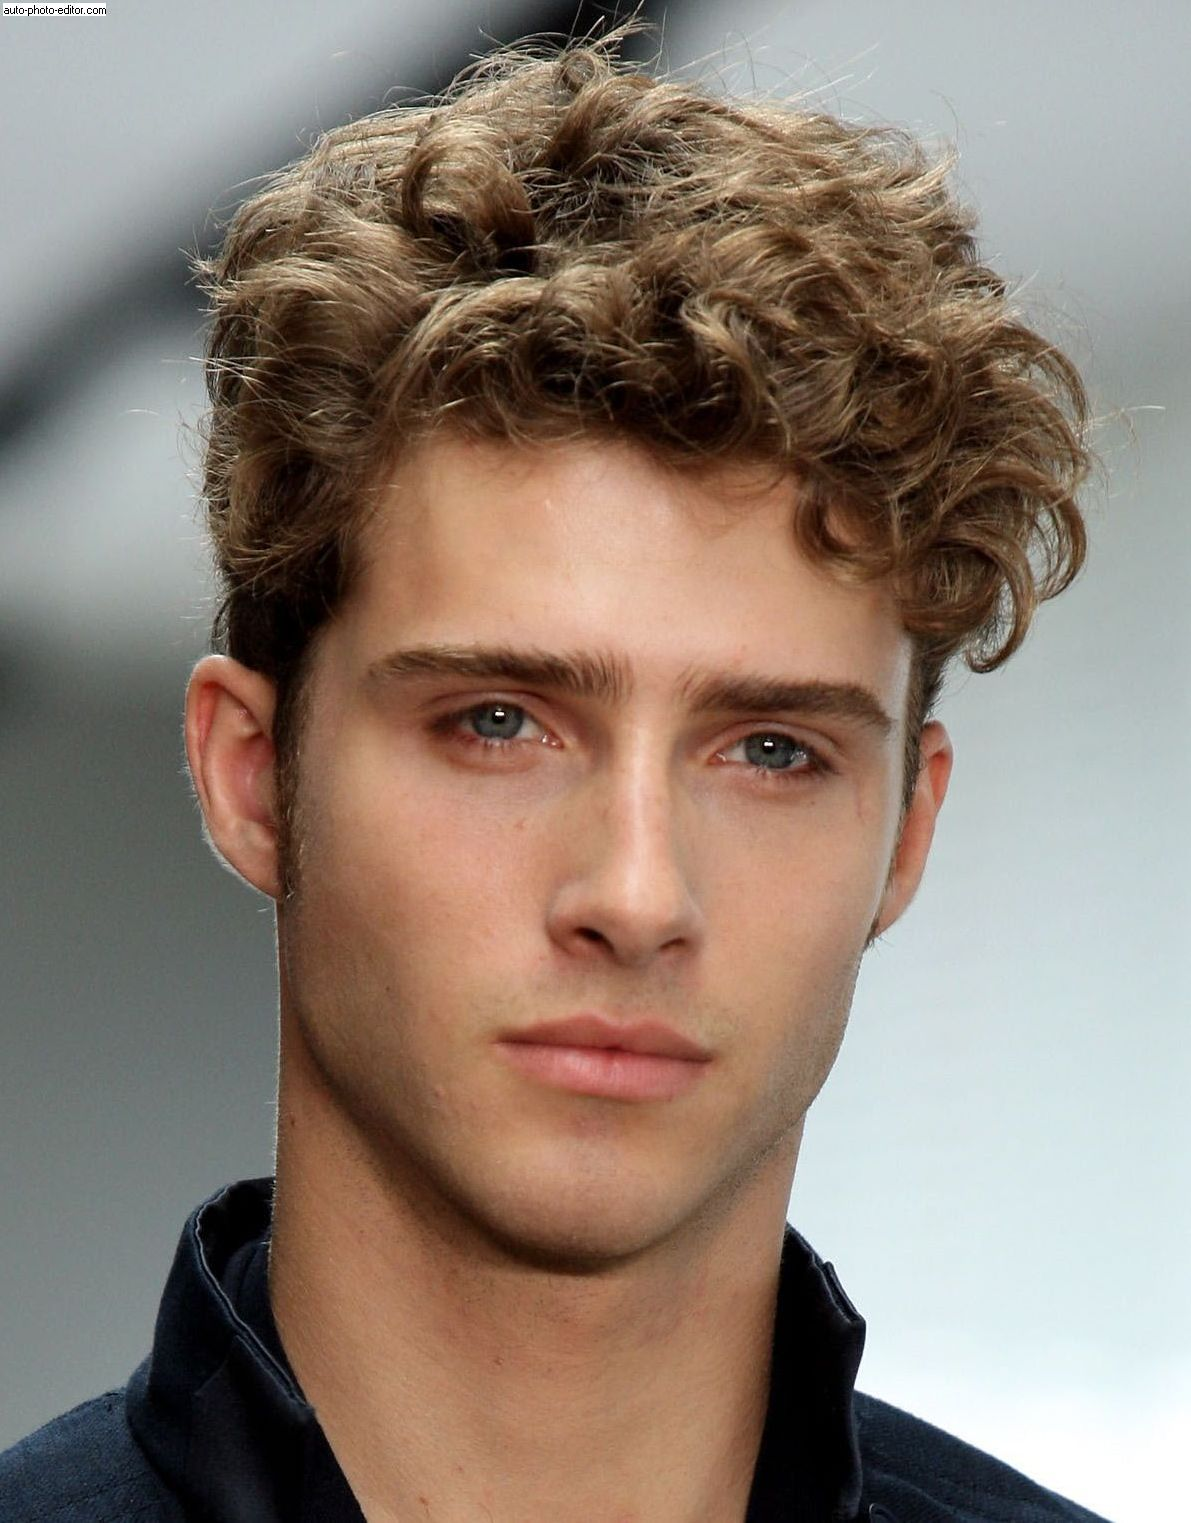 Hipster men hairstyles 25 hairstyles for hipster men look - Curly Hairstyles For Men